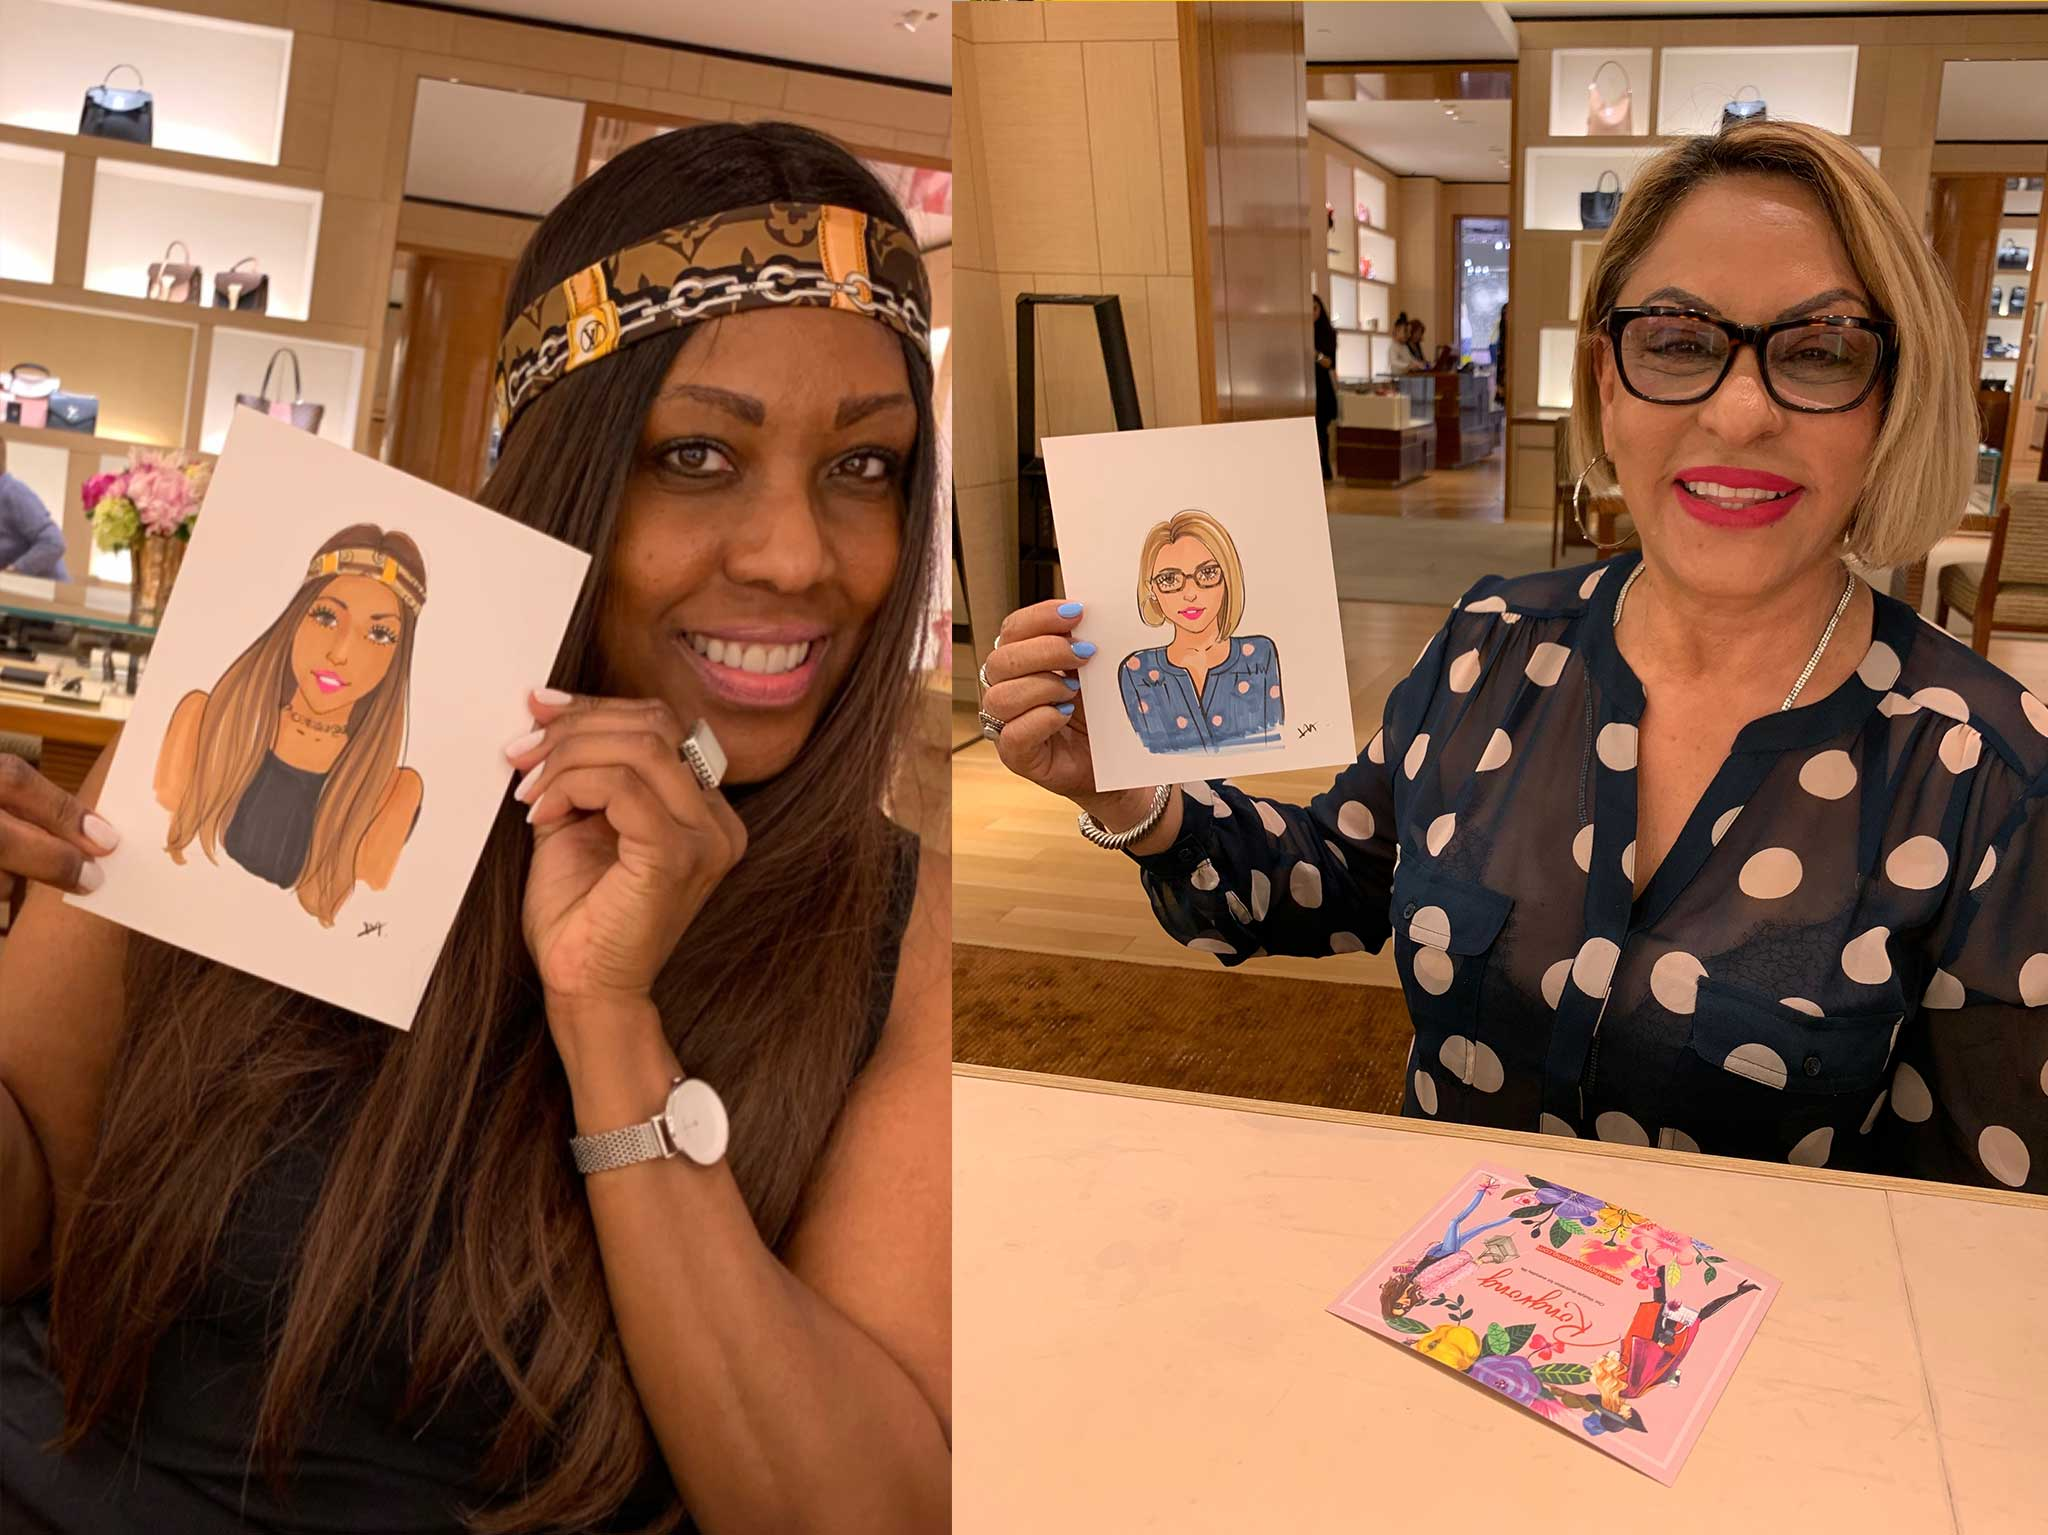 Fashion-illustrator-Rongrong-DeVoe-live-sketch-at-Louis-Vuitton-store-in-Houston-for-mother's-day-2019.jpg